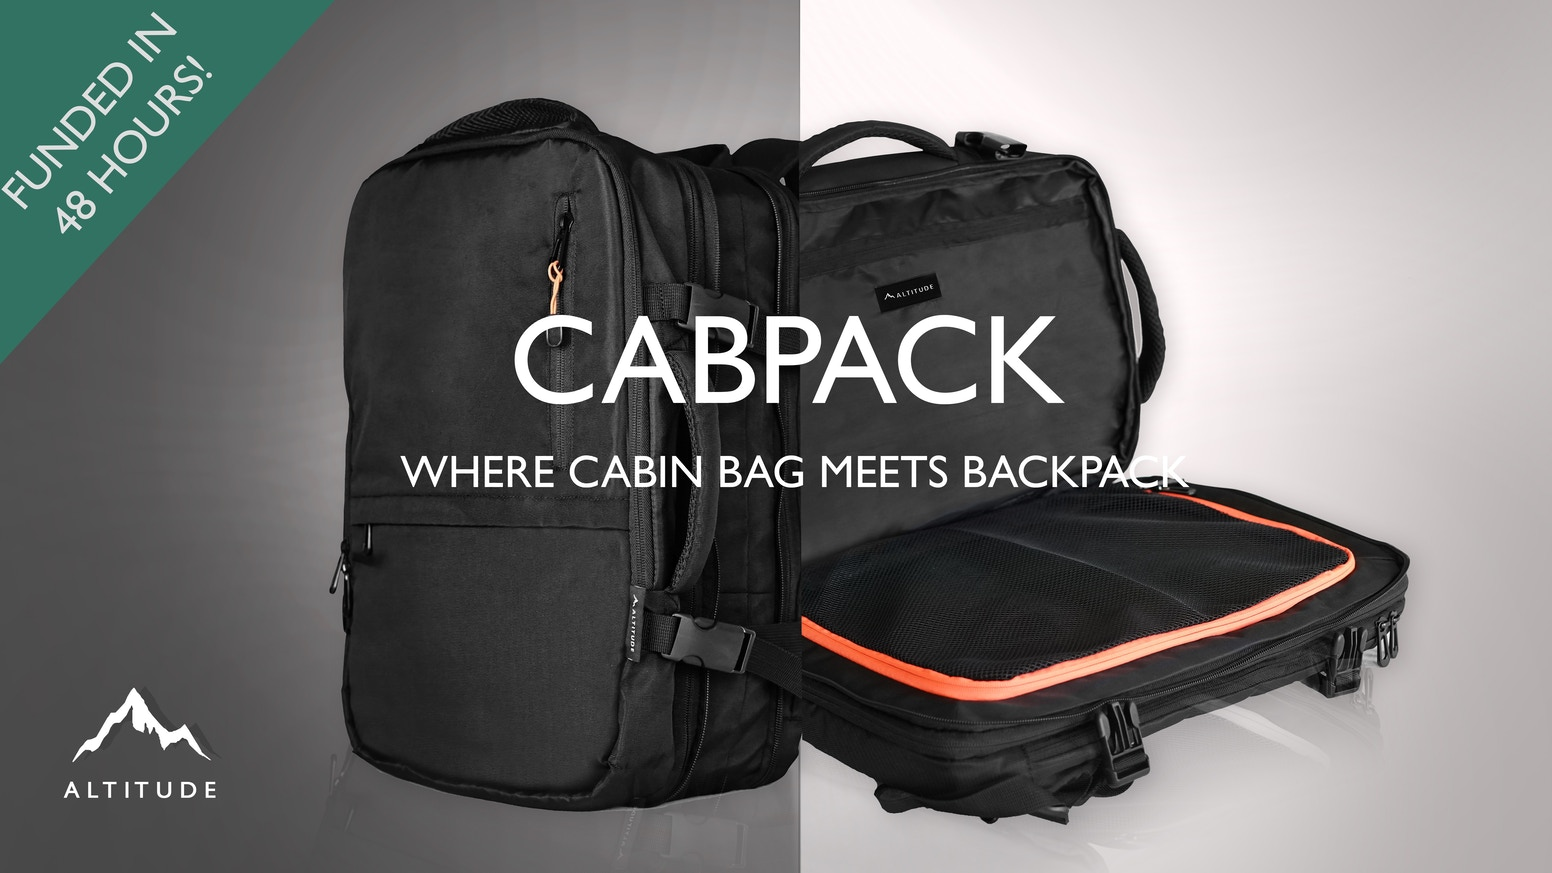 1kg light, double compression, loads of compartments - CABPACK has it all!